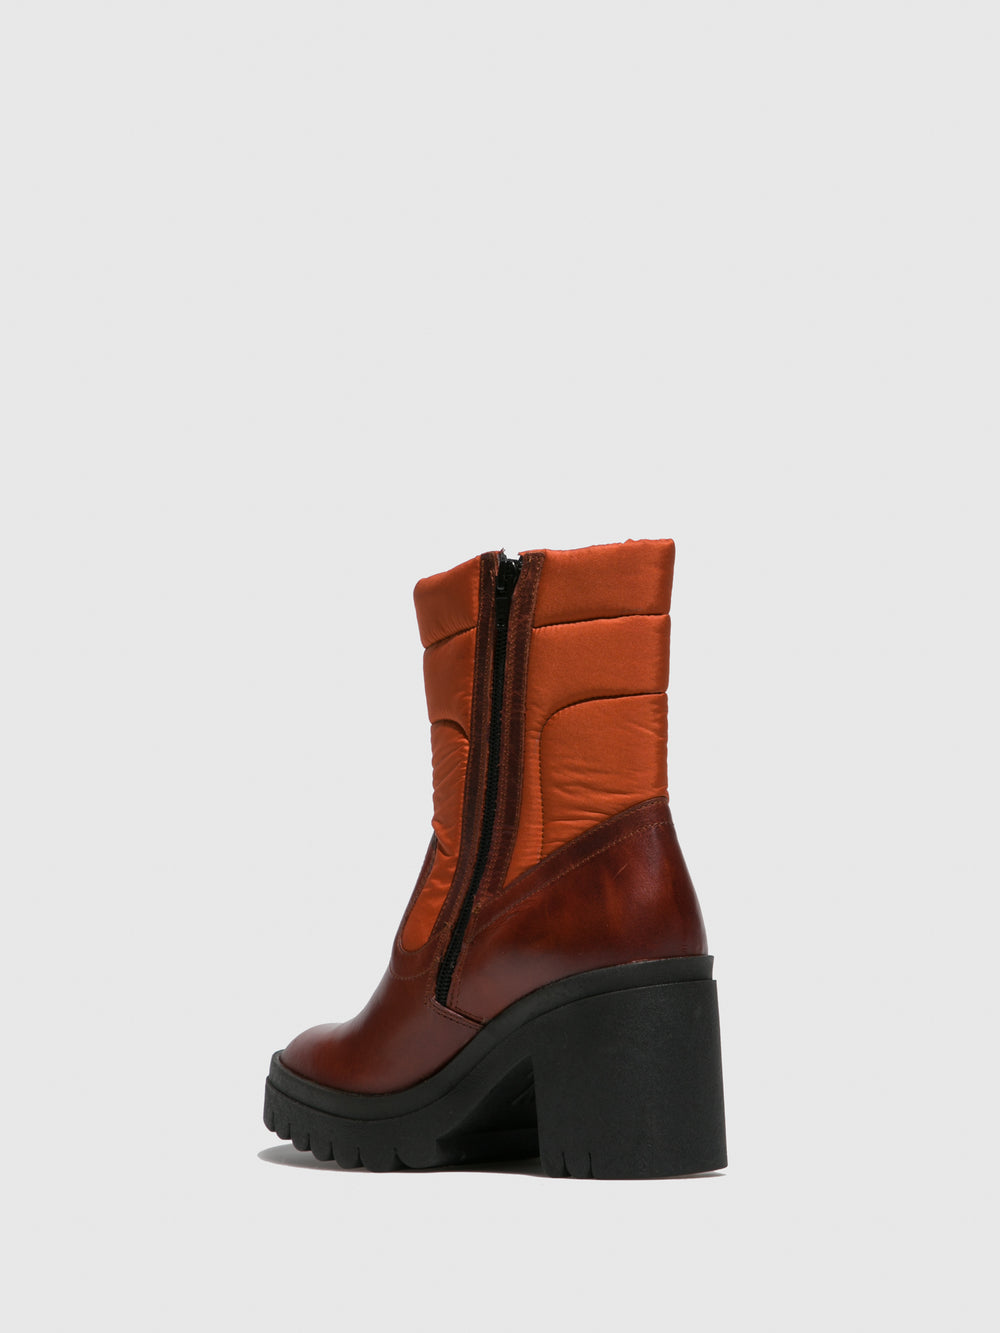 Zip Up Ankle Boots TYKE661FLY RUG/NYLON BRICK/ORANGE